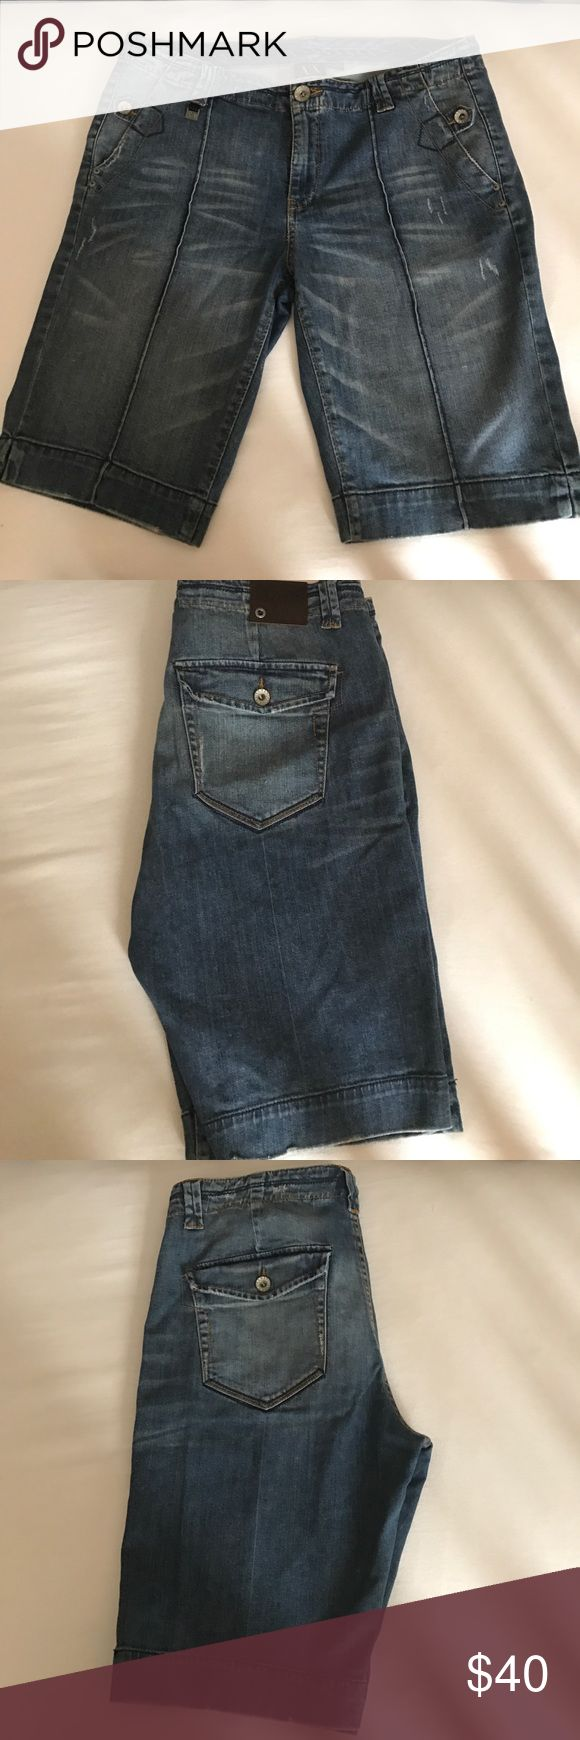 Woman's just above the knee AX denim shorts A|X just above the knee medium to light wash A/X Armani Exchange Shorts Jean Shorts